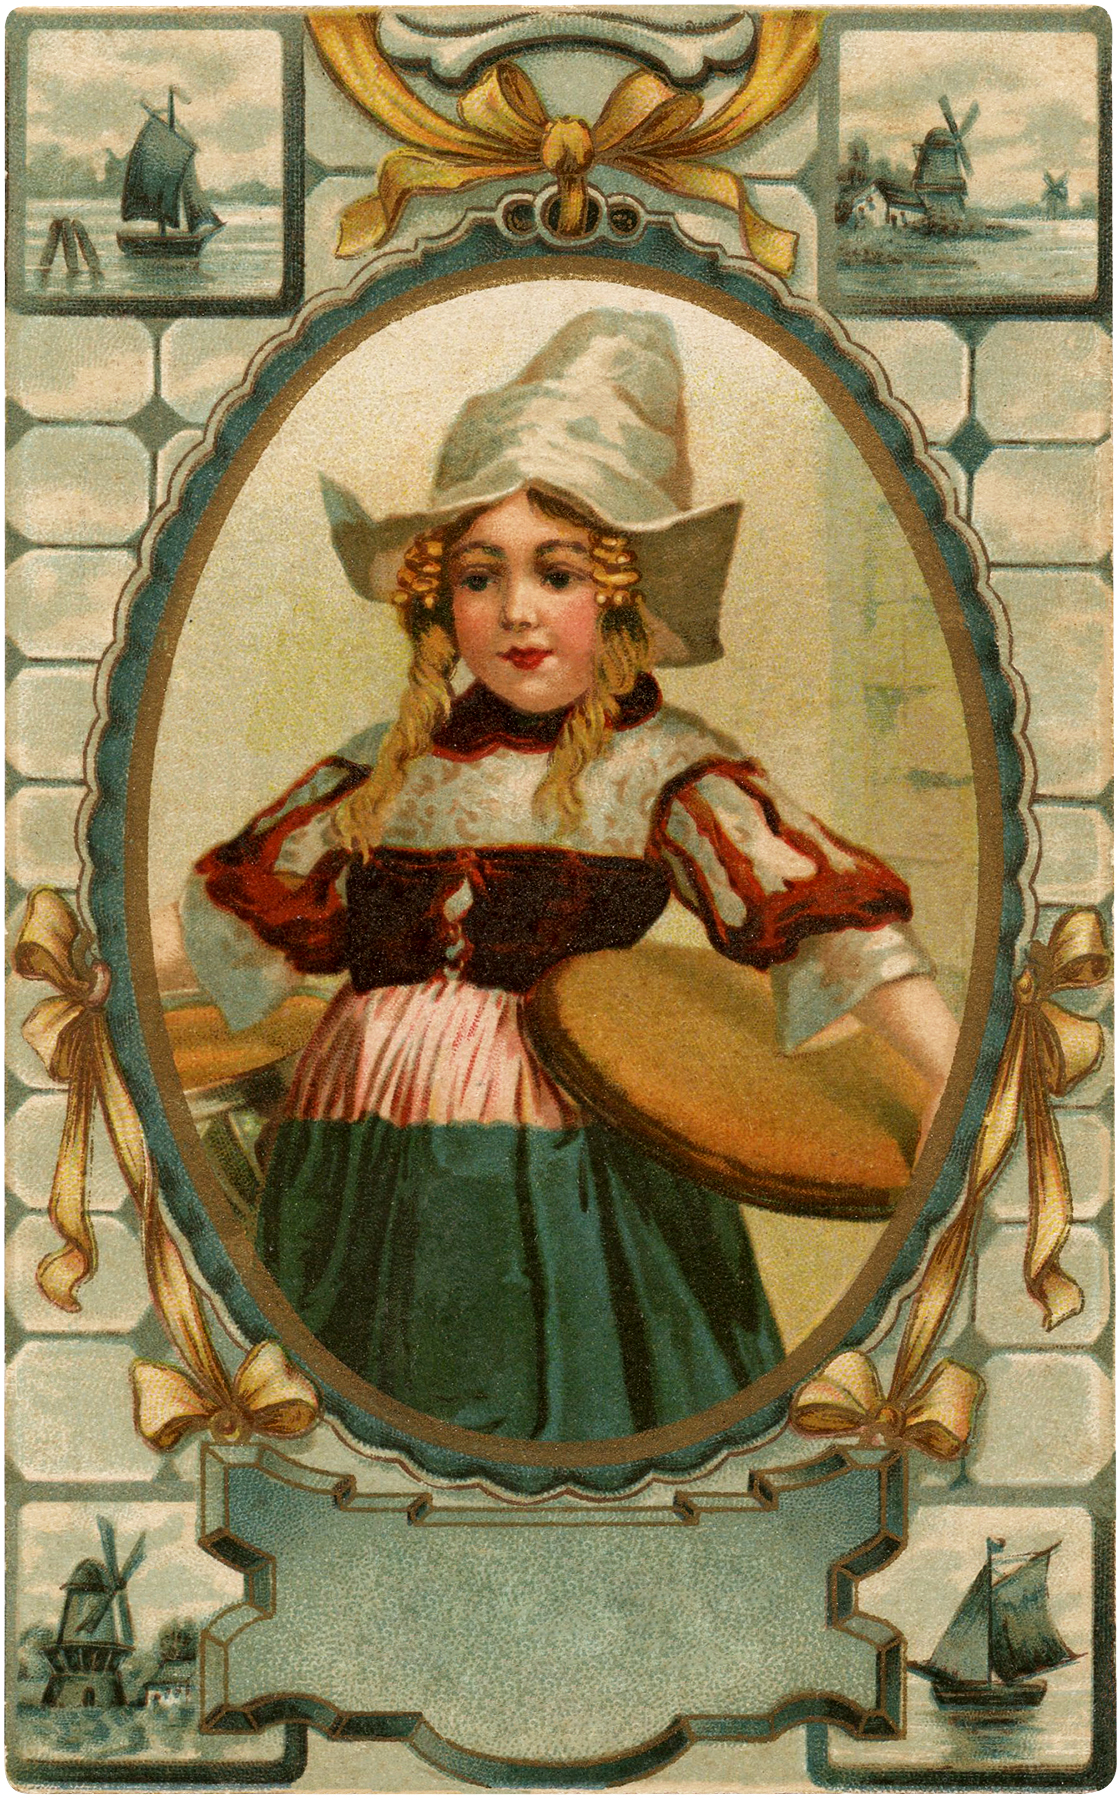 Vintage Dutch Girl Image